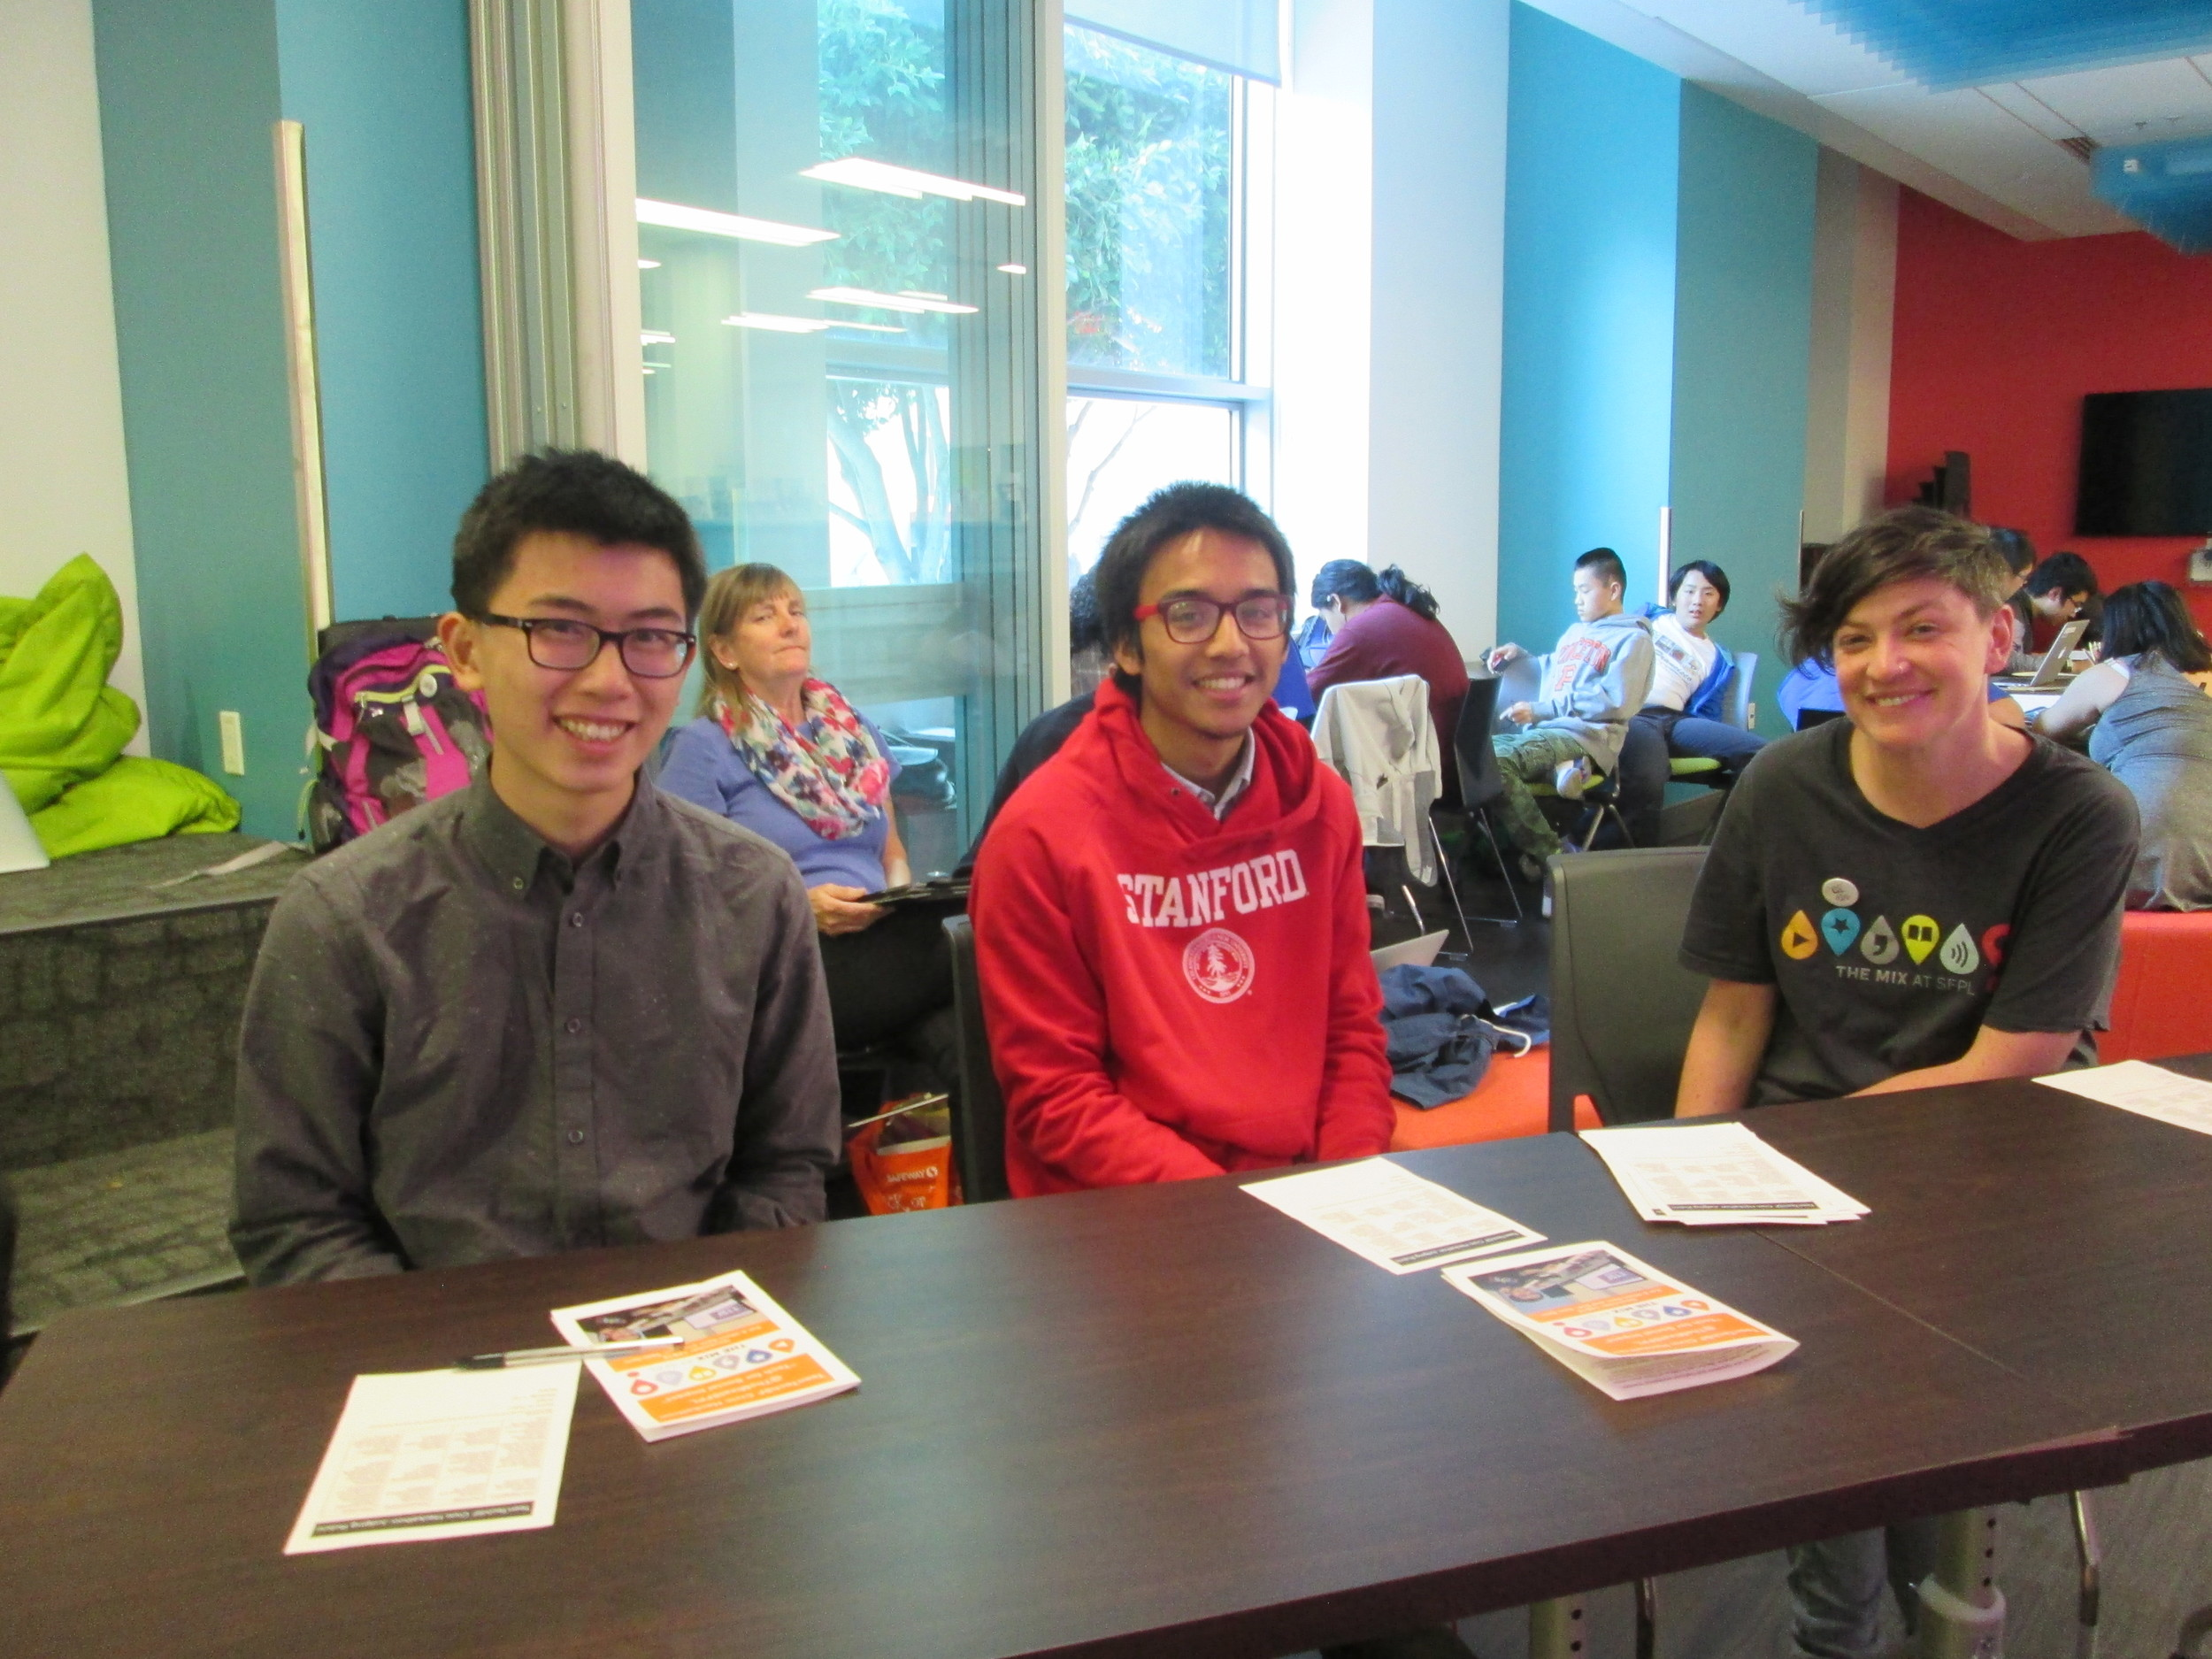 Judging Panel: Austin Tsang (UC Berkeley), Marc Robert Wong (Stanford, TeenTechSF), Mary Abler (The Mix)